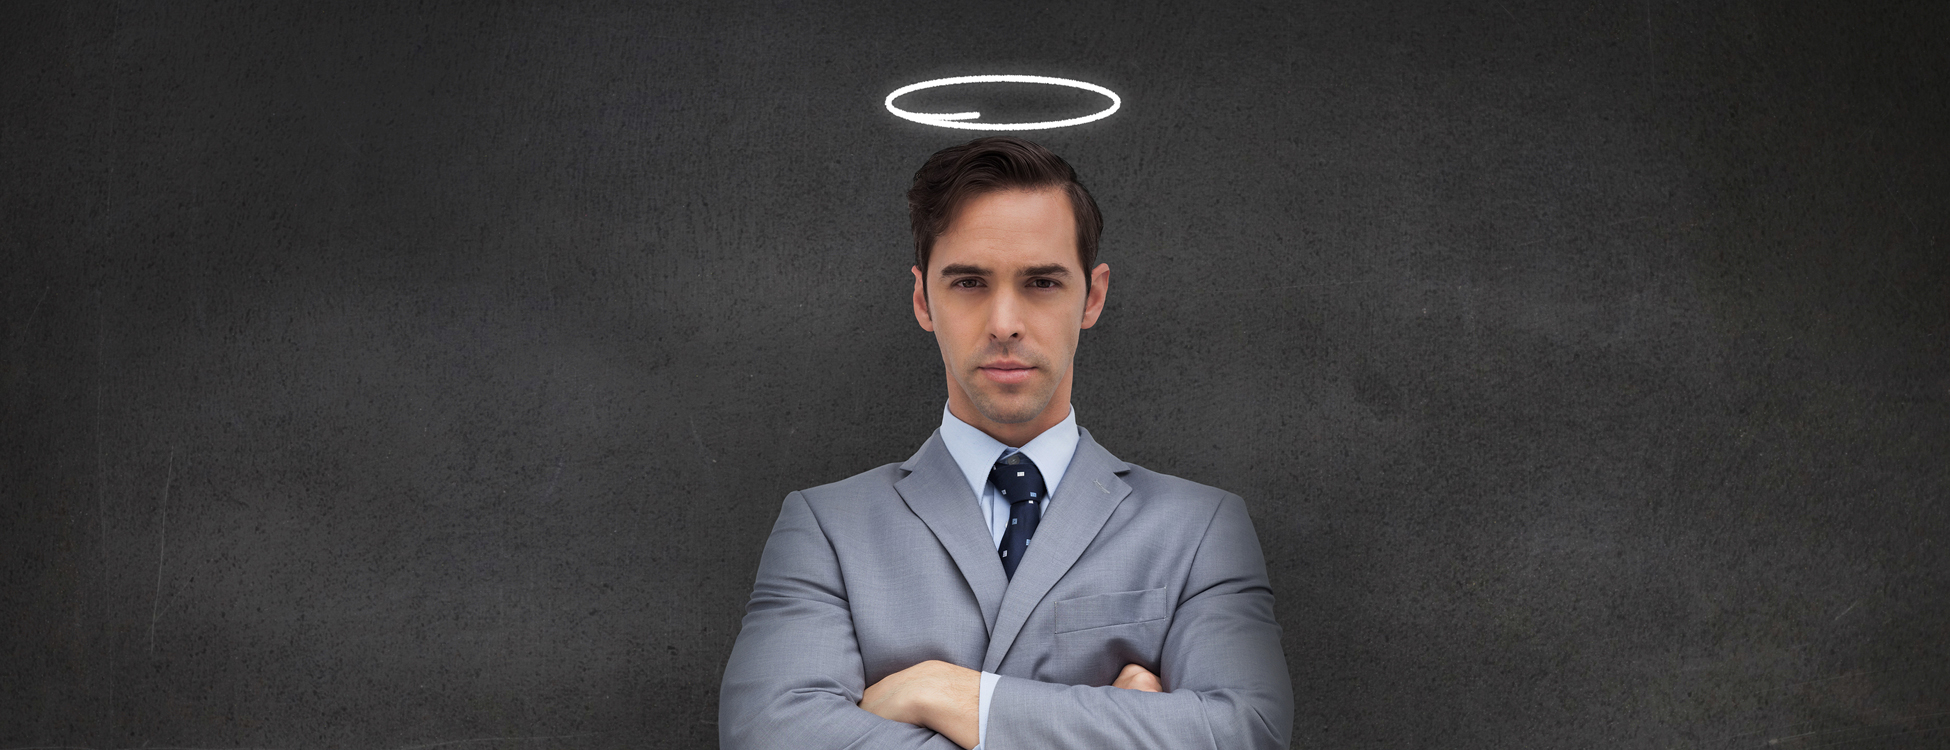 Businessman representing an angel and standing with arms crossed